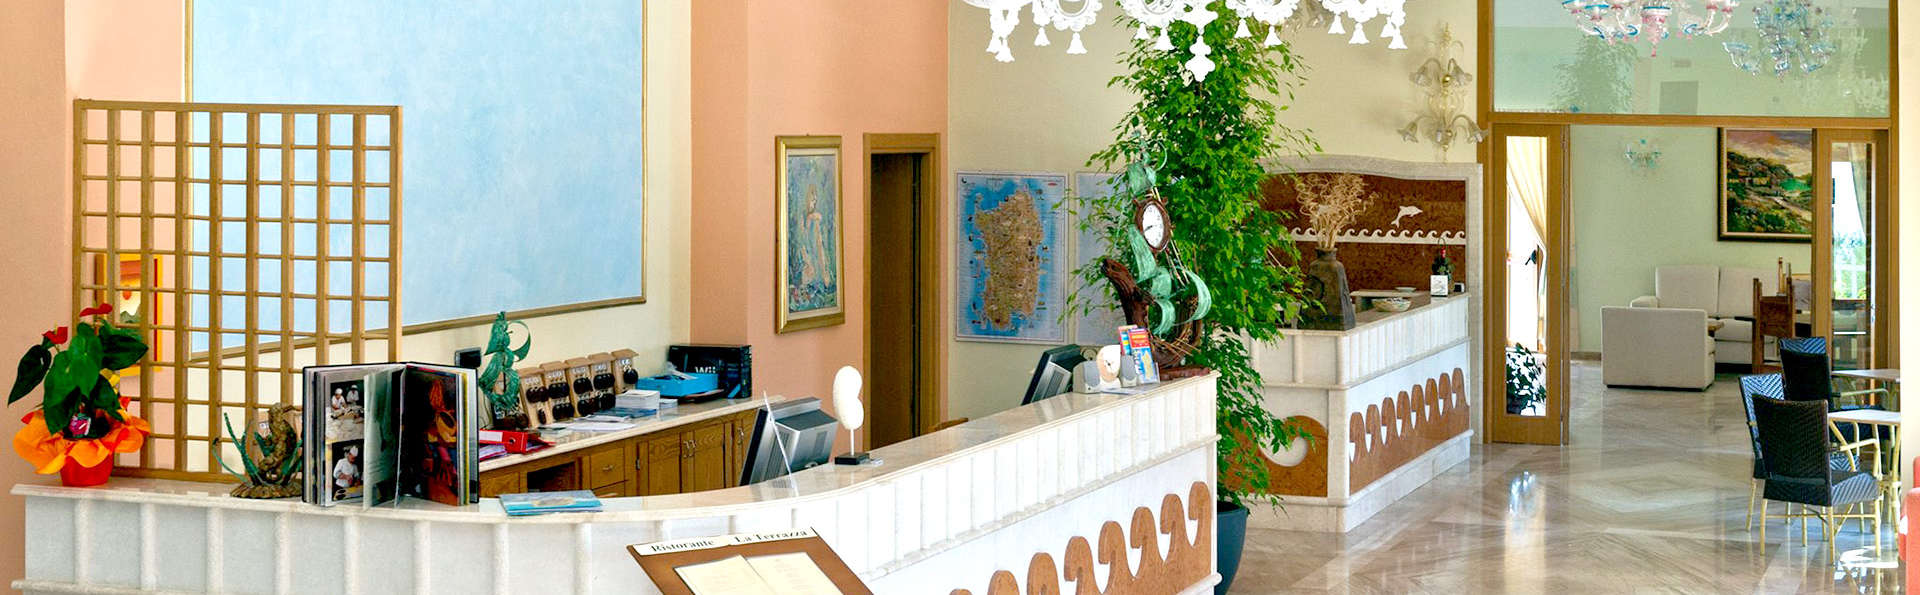 Hotel Brancamaria - Edit_Reception.jpg